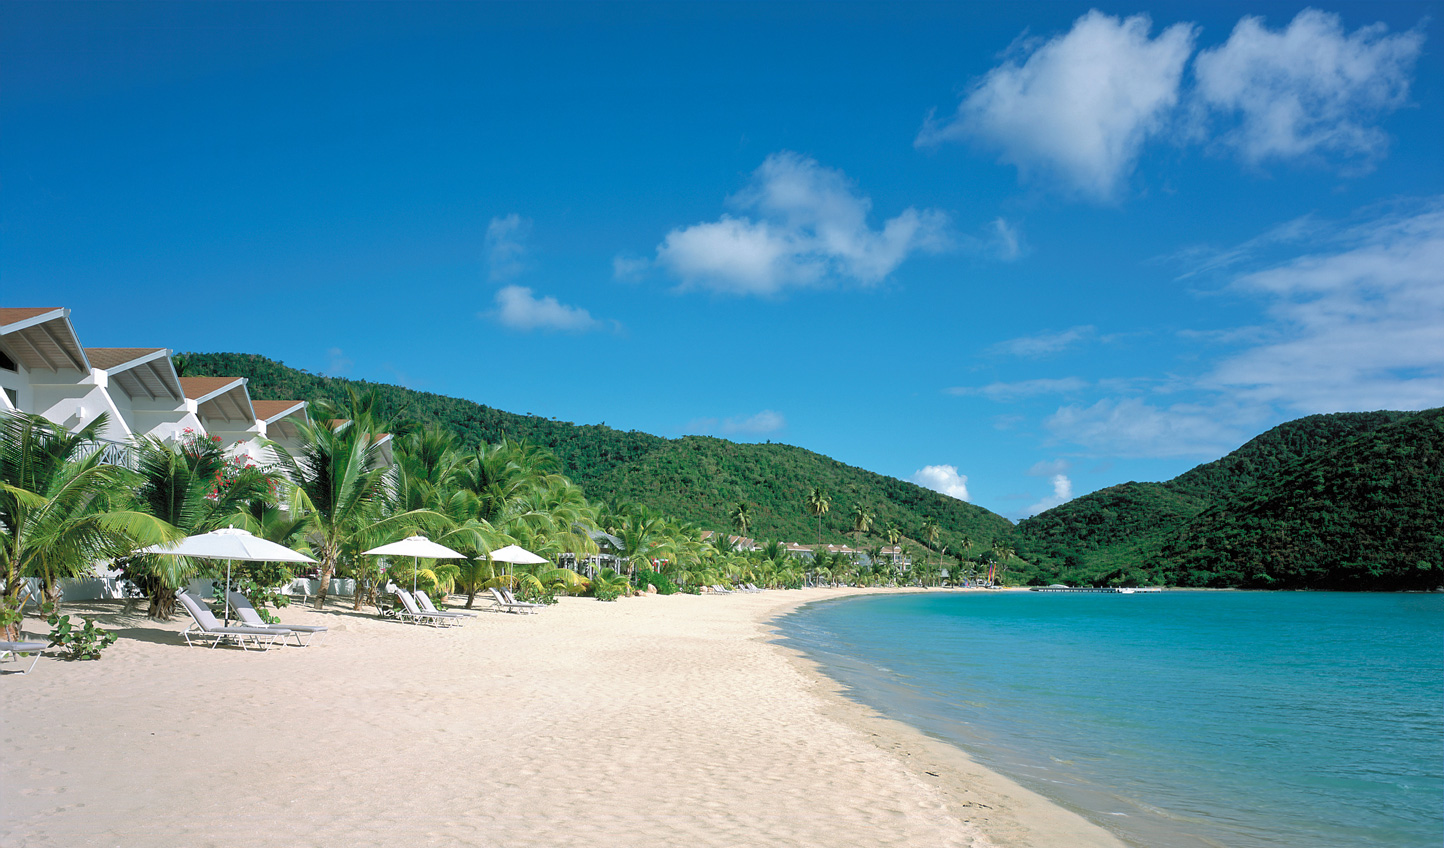 Take a stroll along the soft sands of Carlisle Bay